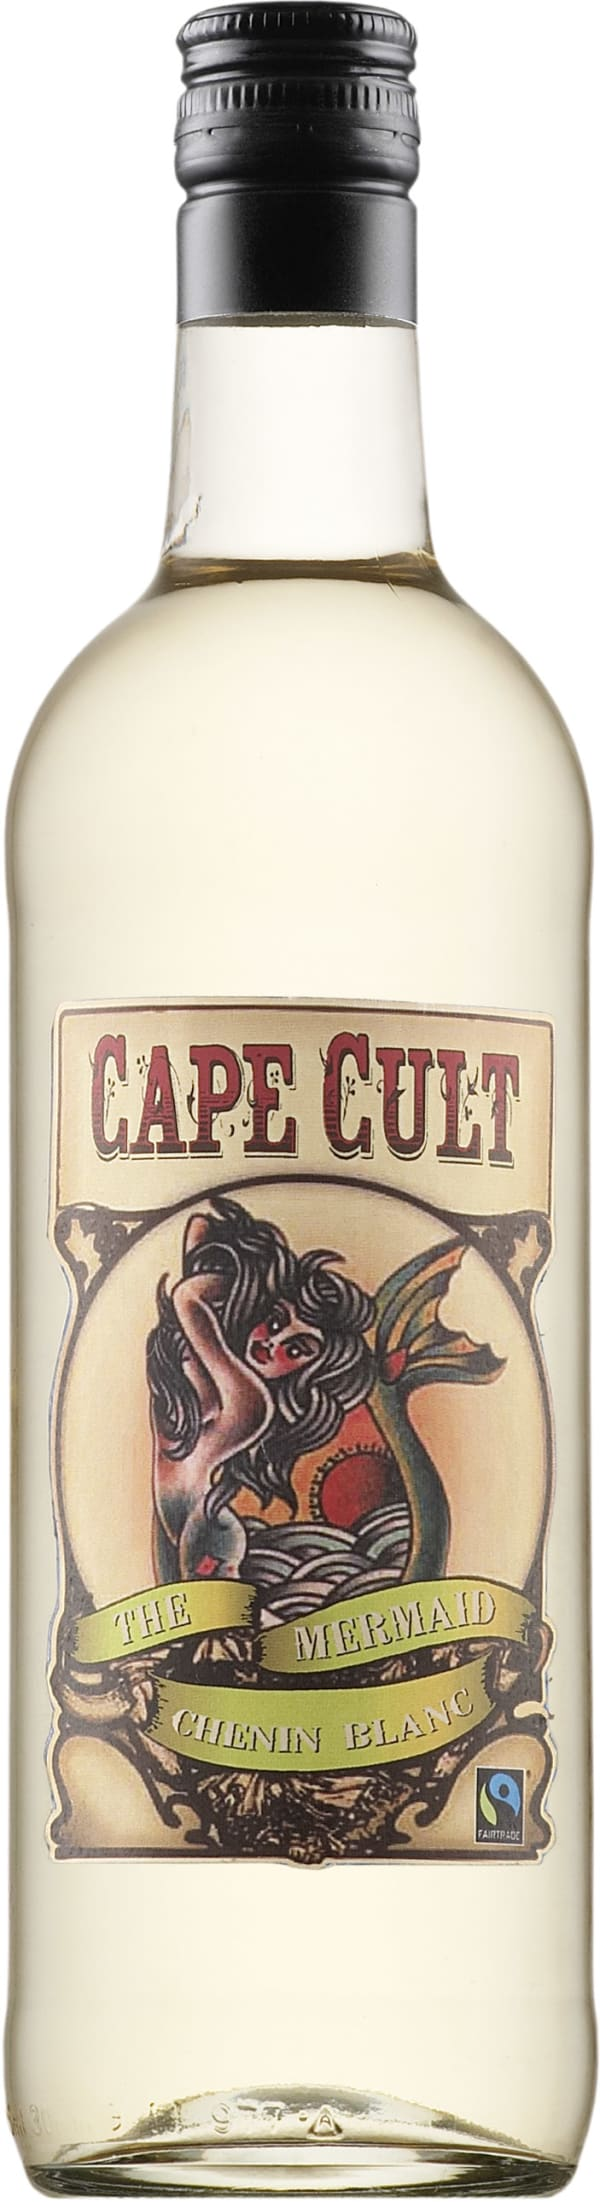 Cape Cult The Mermaid Chenin Blanc 2015